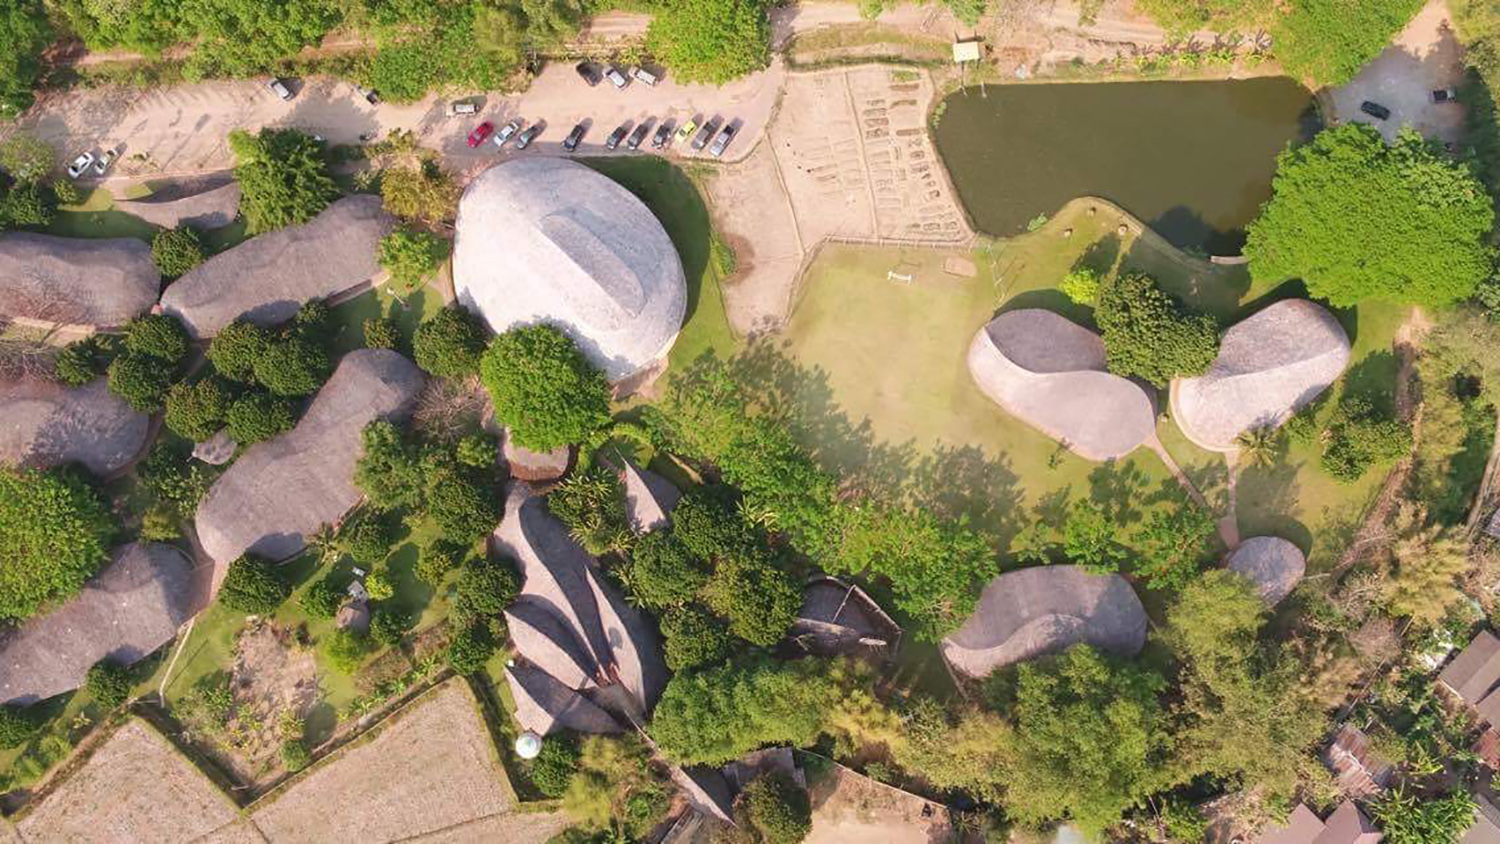 Designboom publishes the Bamboo Sports Hall